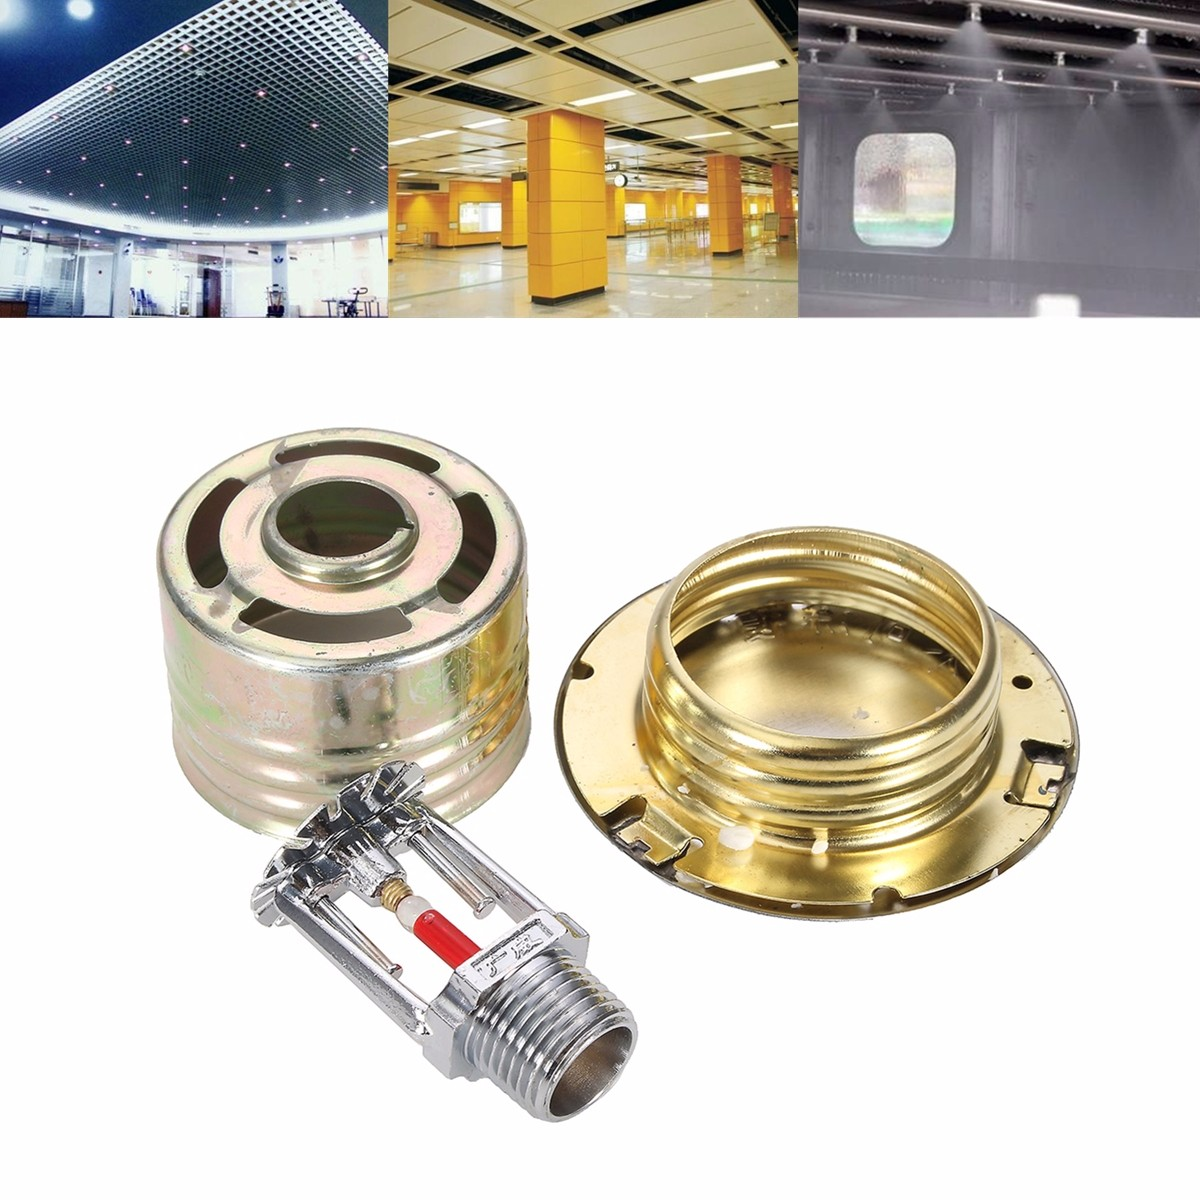 Type Sprinkler Head With Cover For Fire Extinguishing System Protection For Fire Extinguishing System Protection Sprinkler